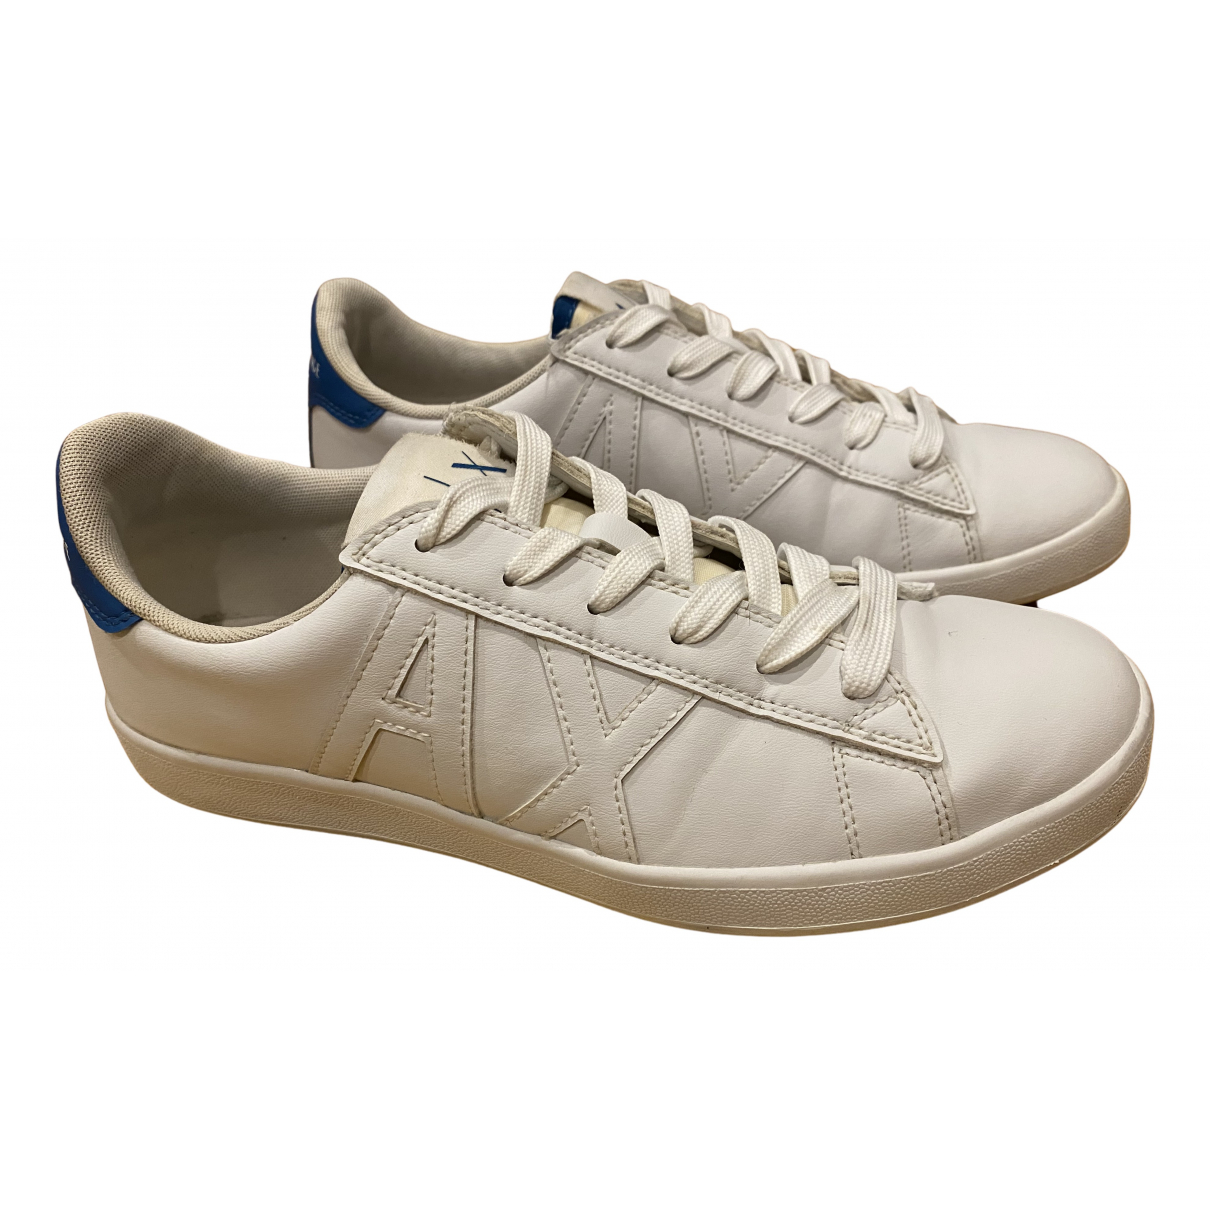 Emporio Armani \N Sneakers in  Weiss Leder